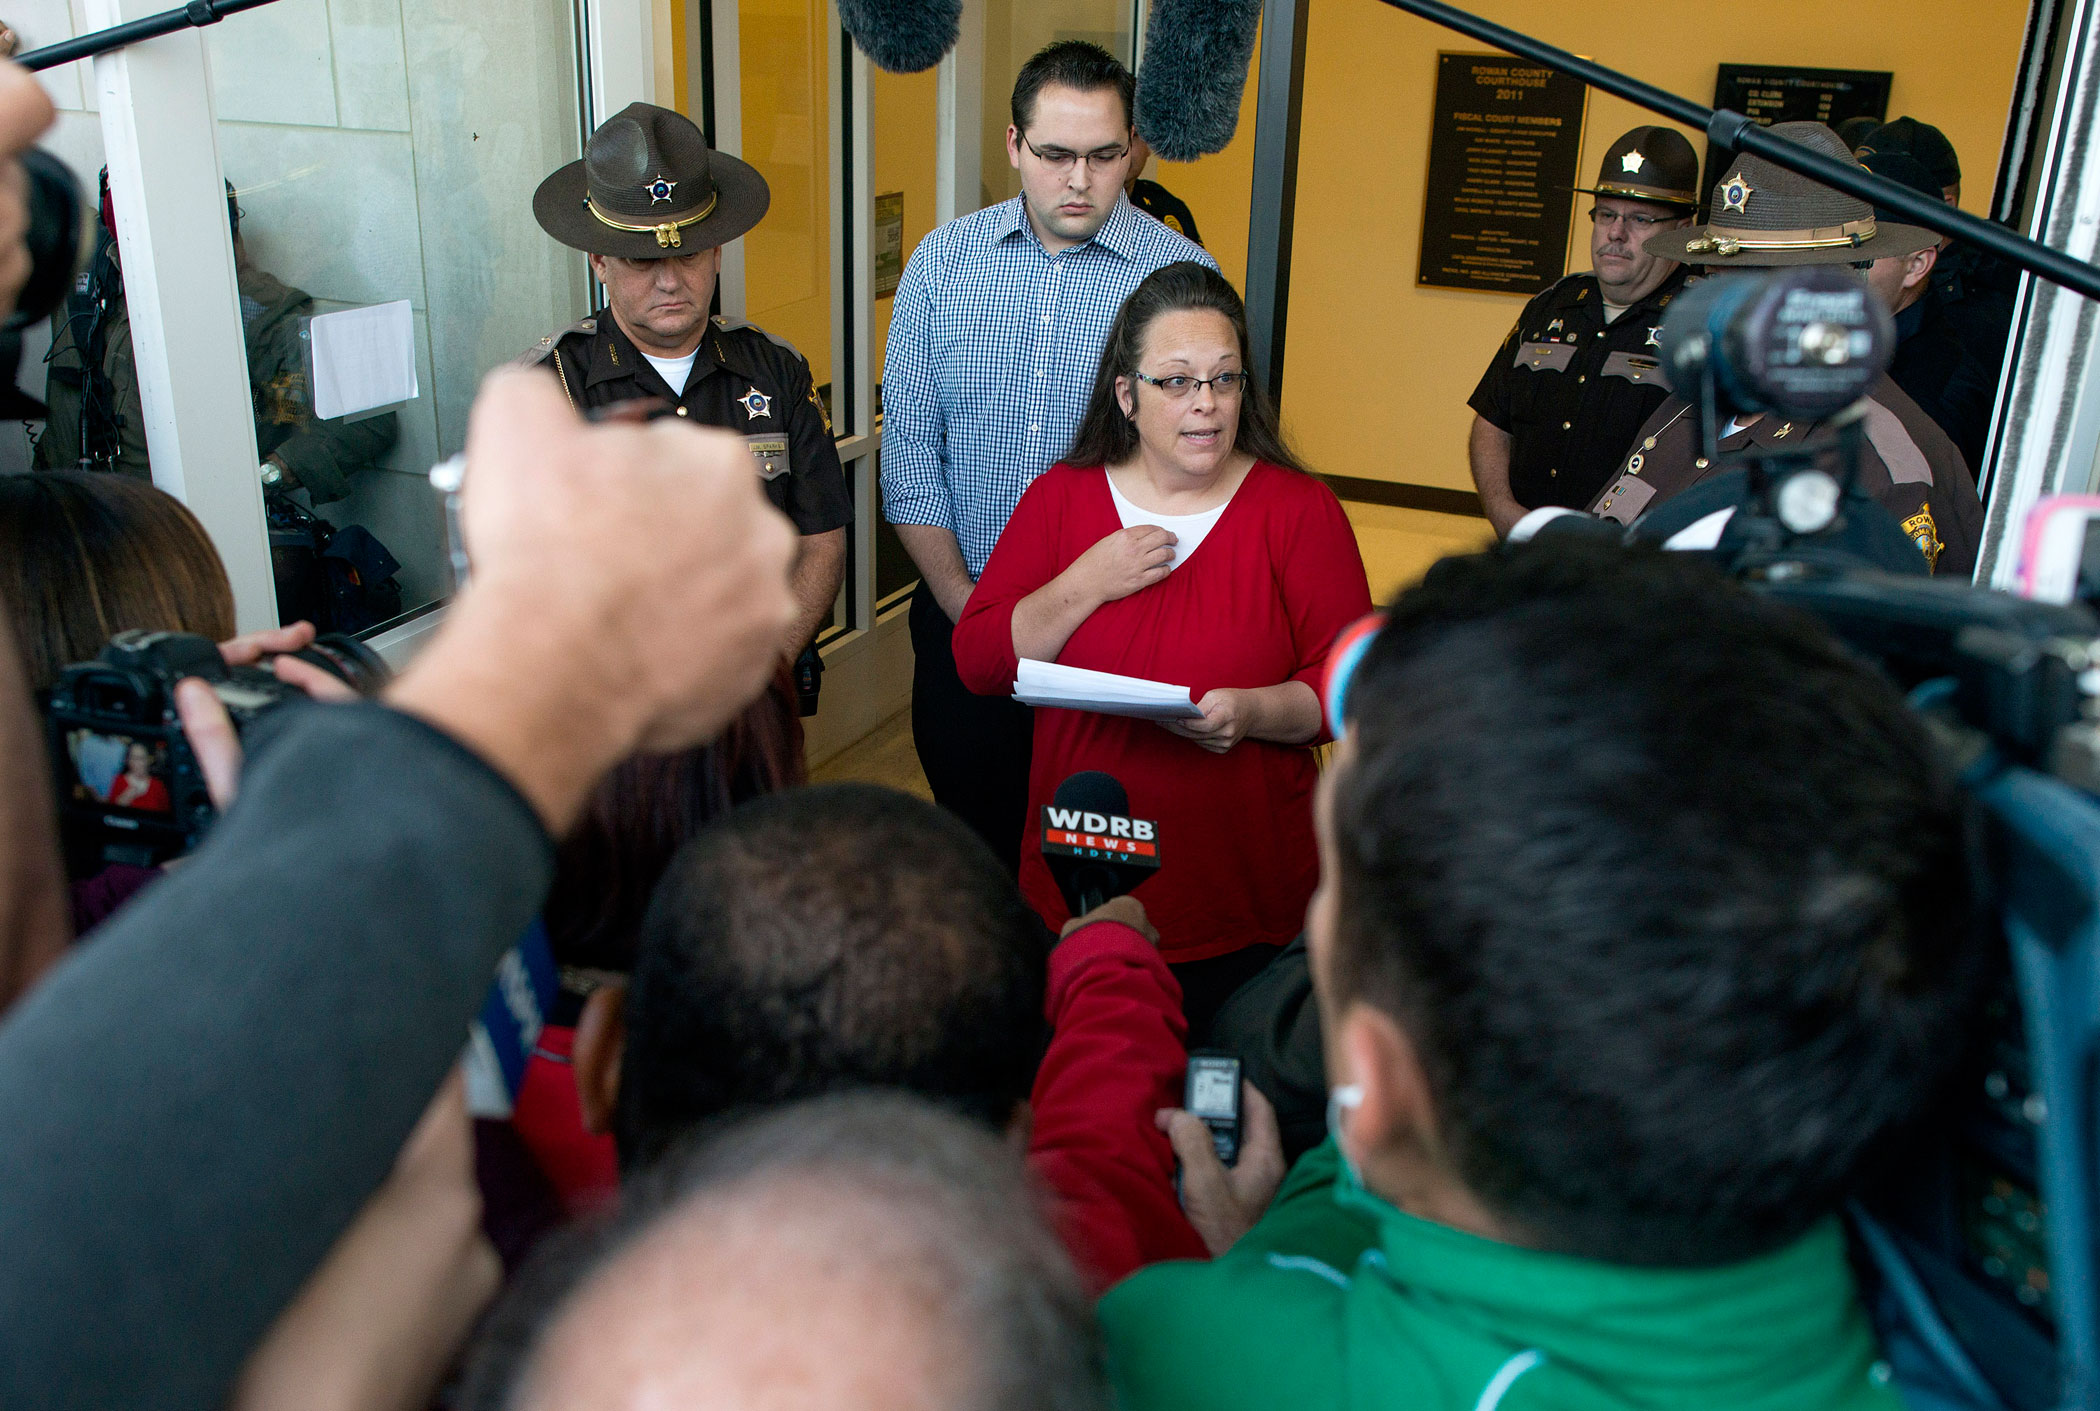 Rowan County clerk Kim Davis gives a statement  about  her intentions on applying her signature to same sex marriage licenses on her first day back to work, after being released from jail last week, at the Rowan County Courthouse on Sept. 14, 2015 in Morehead, Ky.